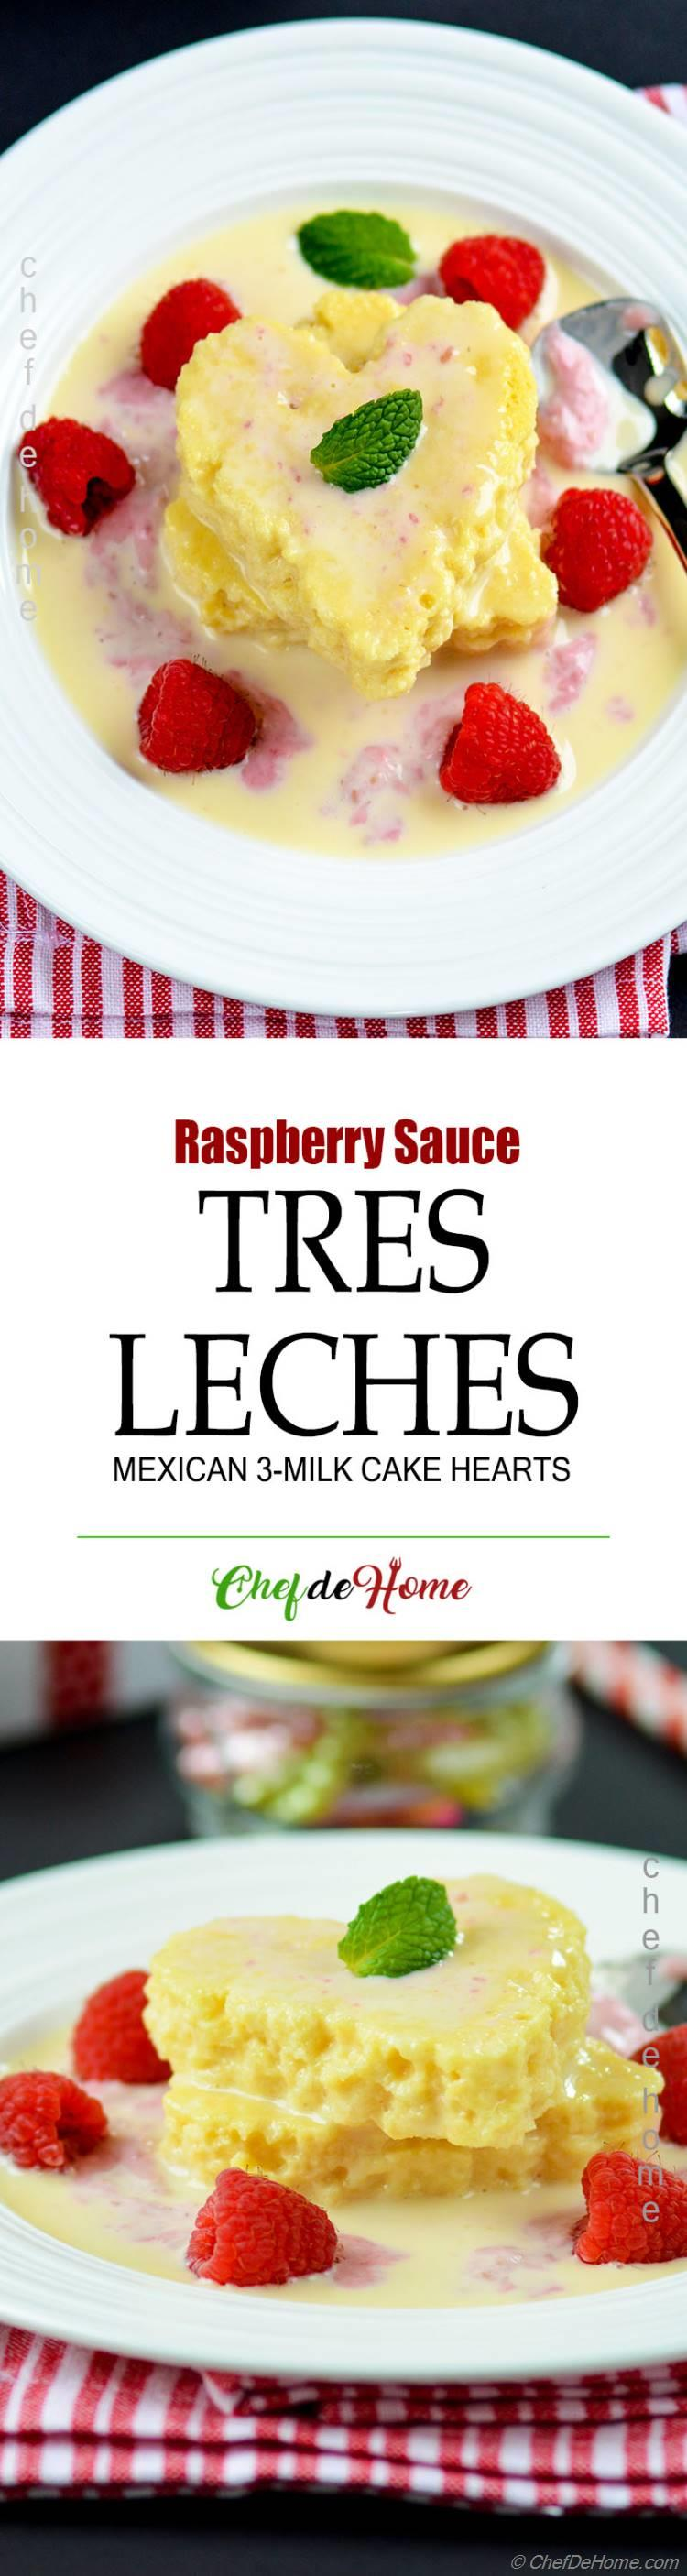 Mexican Dessert Tres Leches Cake Recipe